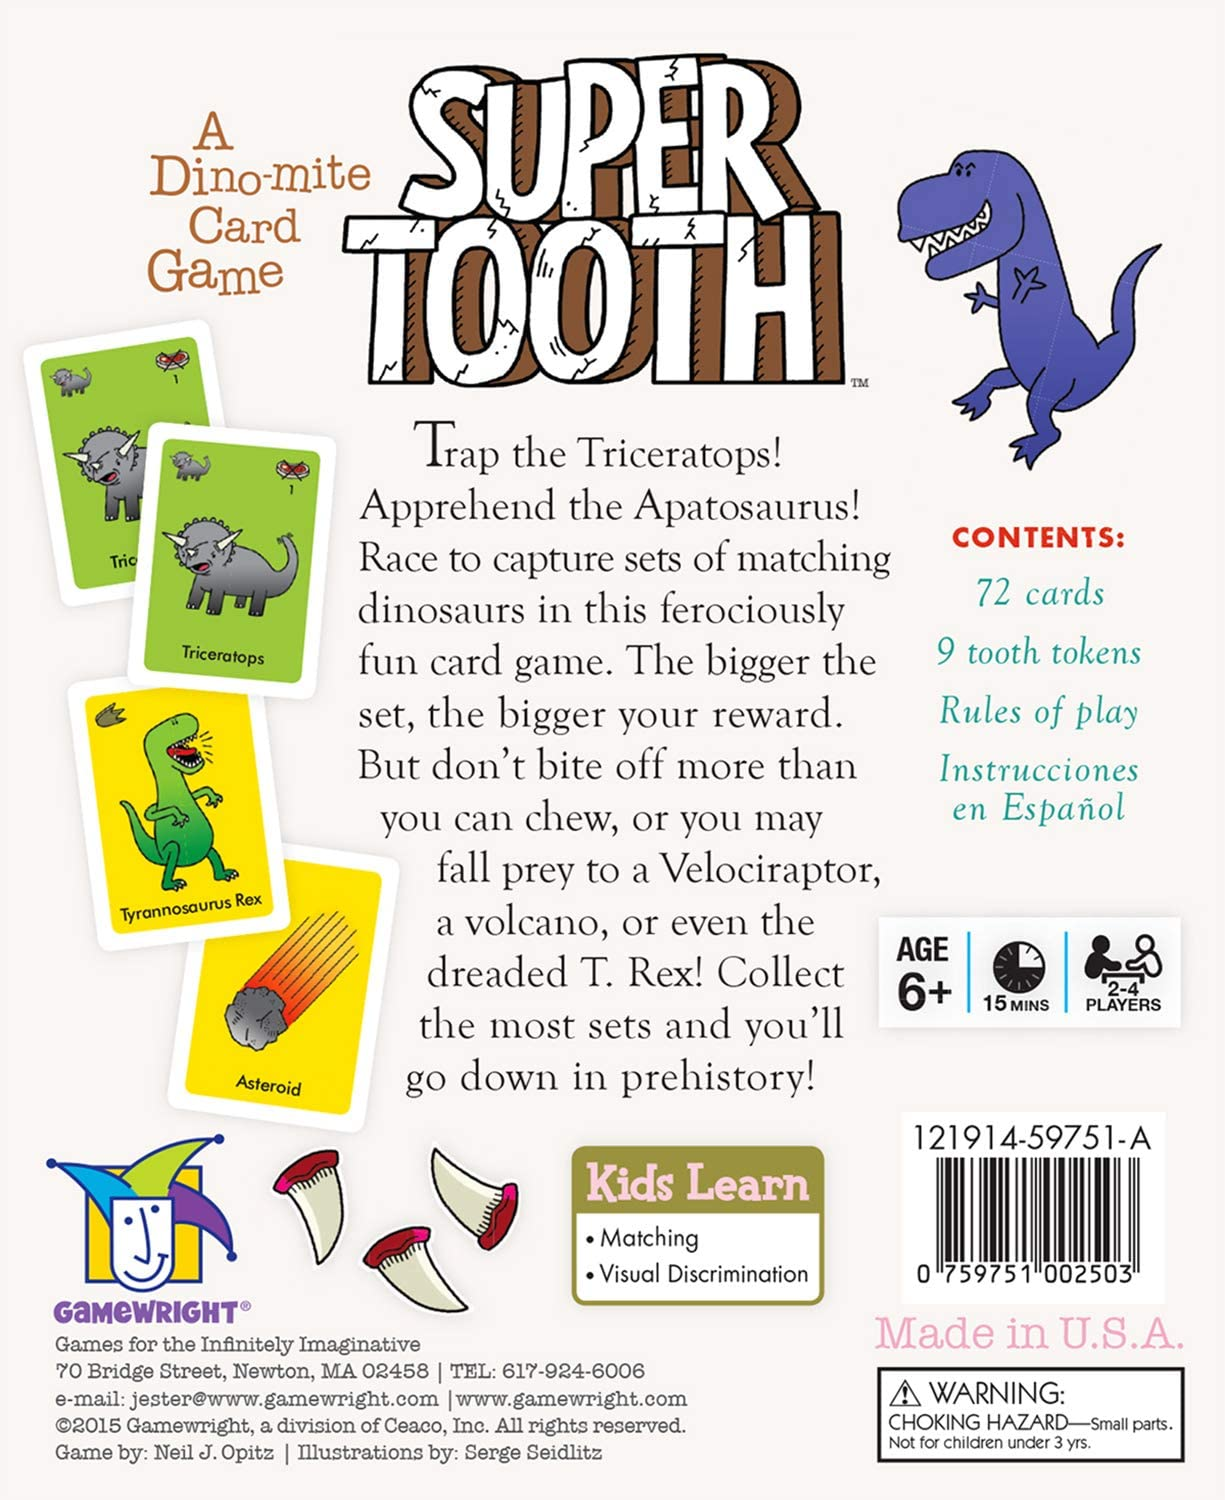 Super Tooth A Dino mite Card Game Card Game Ceaco 250